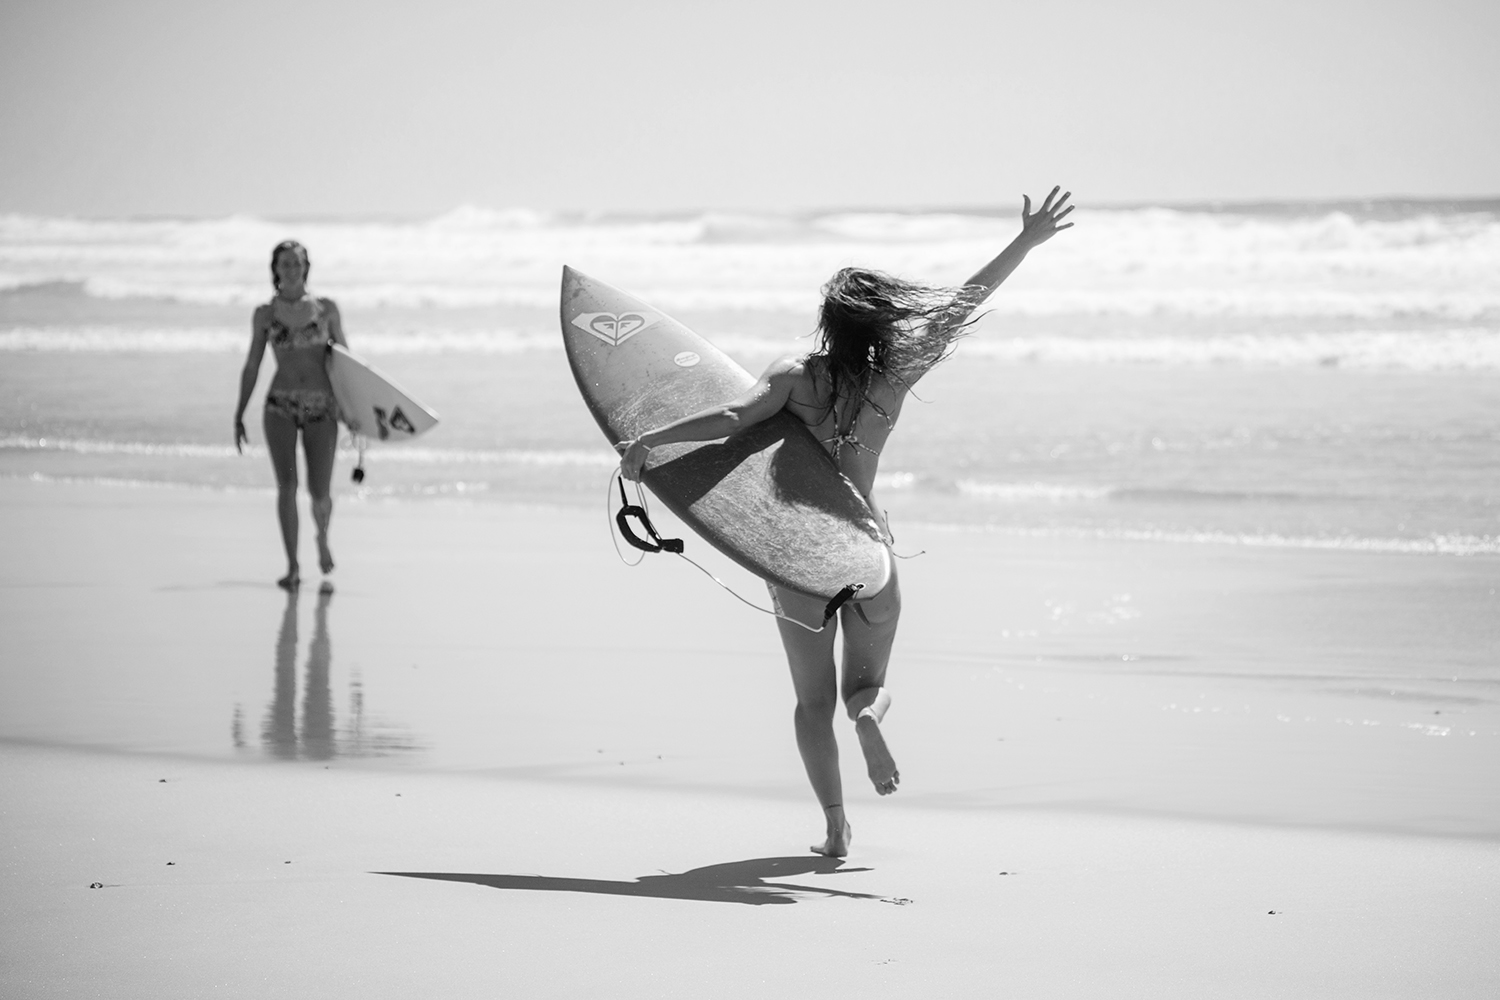 Cooling off in Cabarita during the #ROXYpro